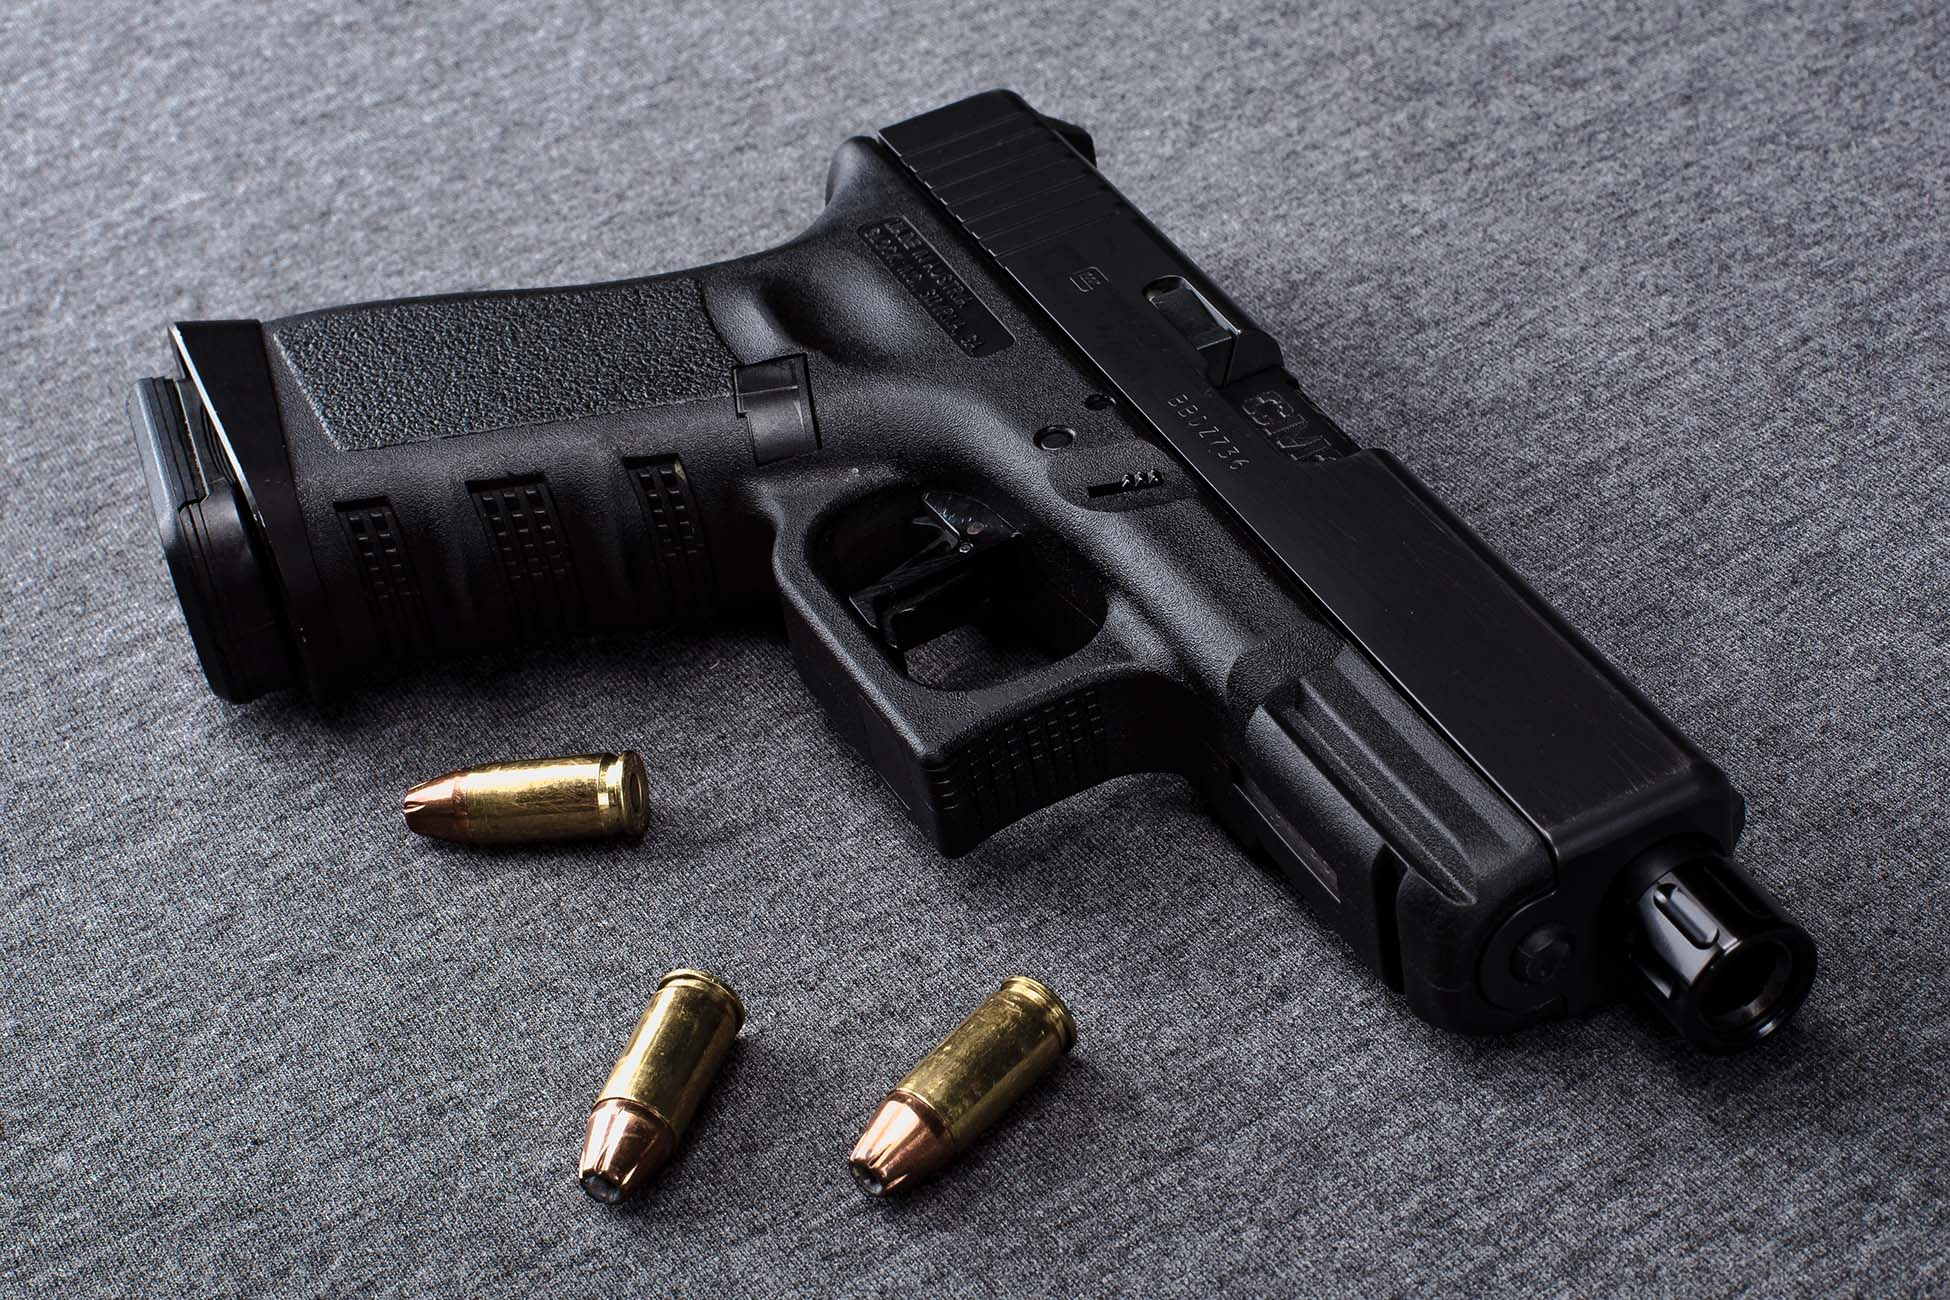 9mm Glock Pistol with jacketed hollow point ammo